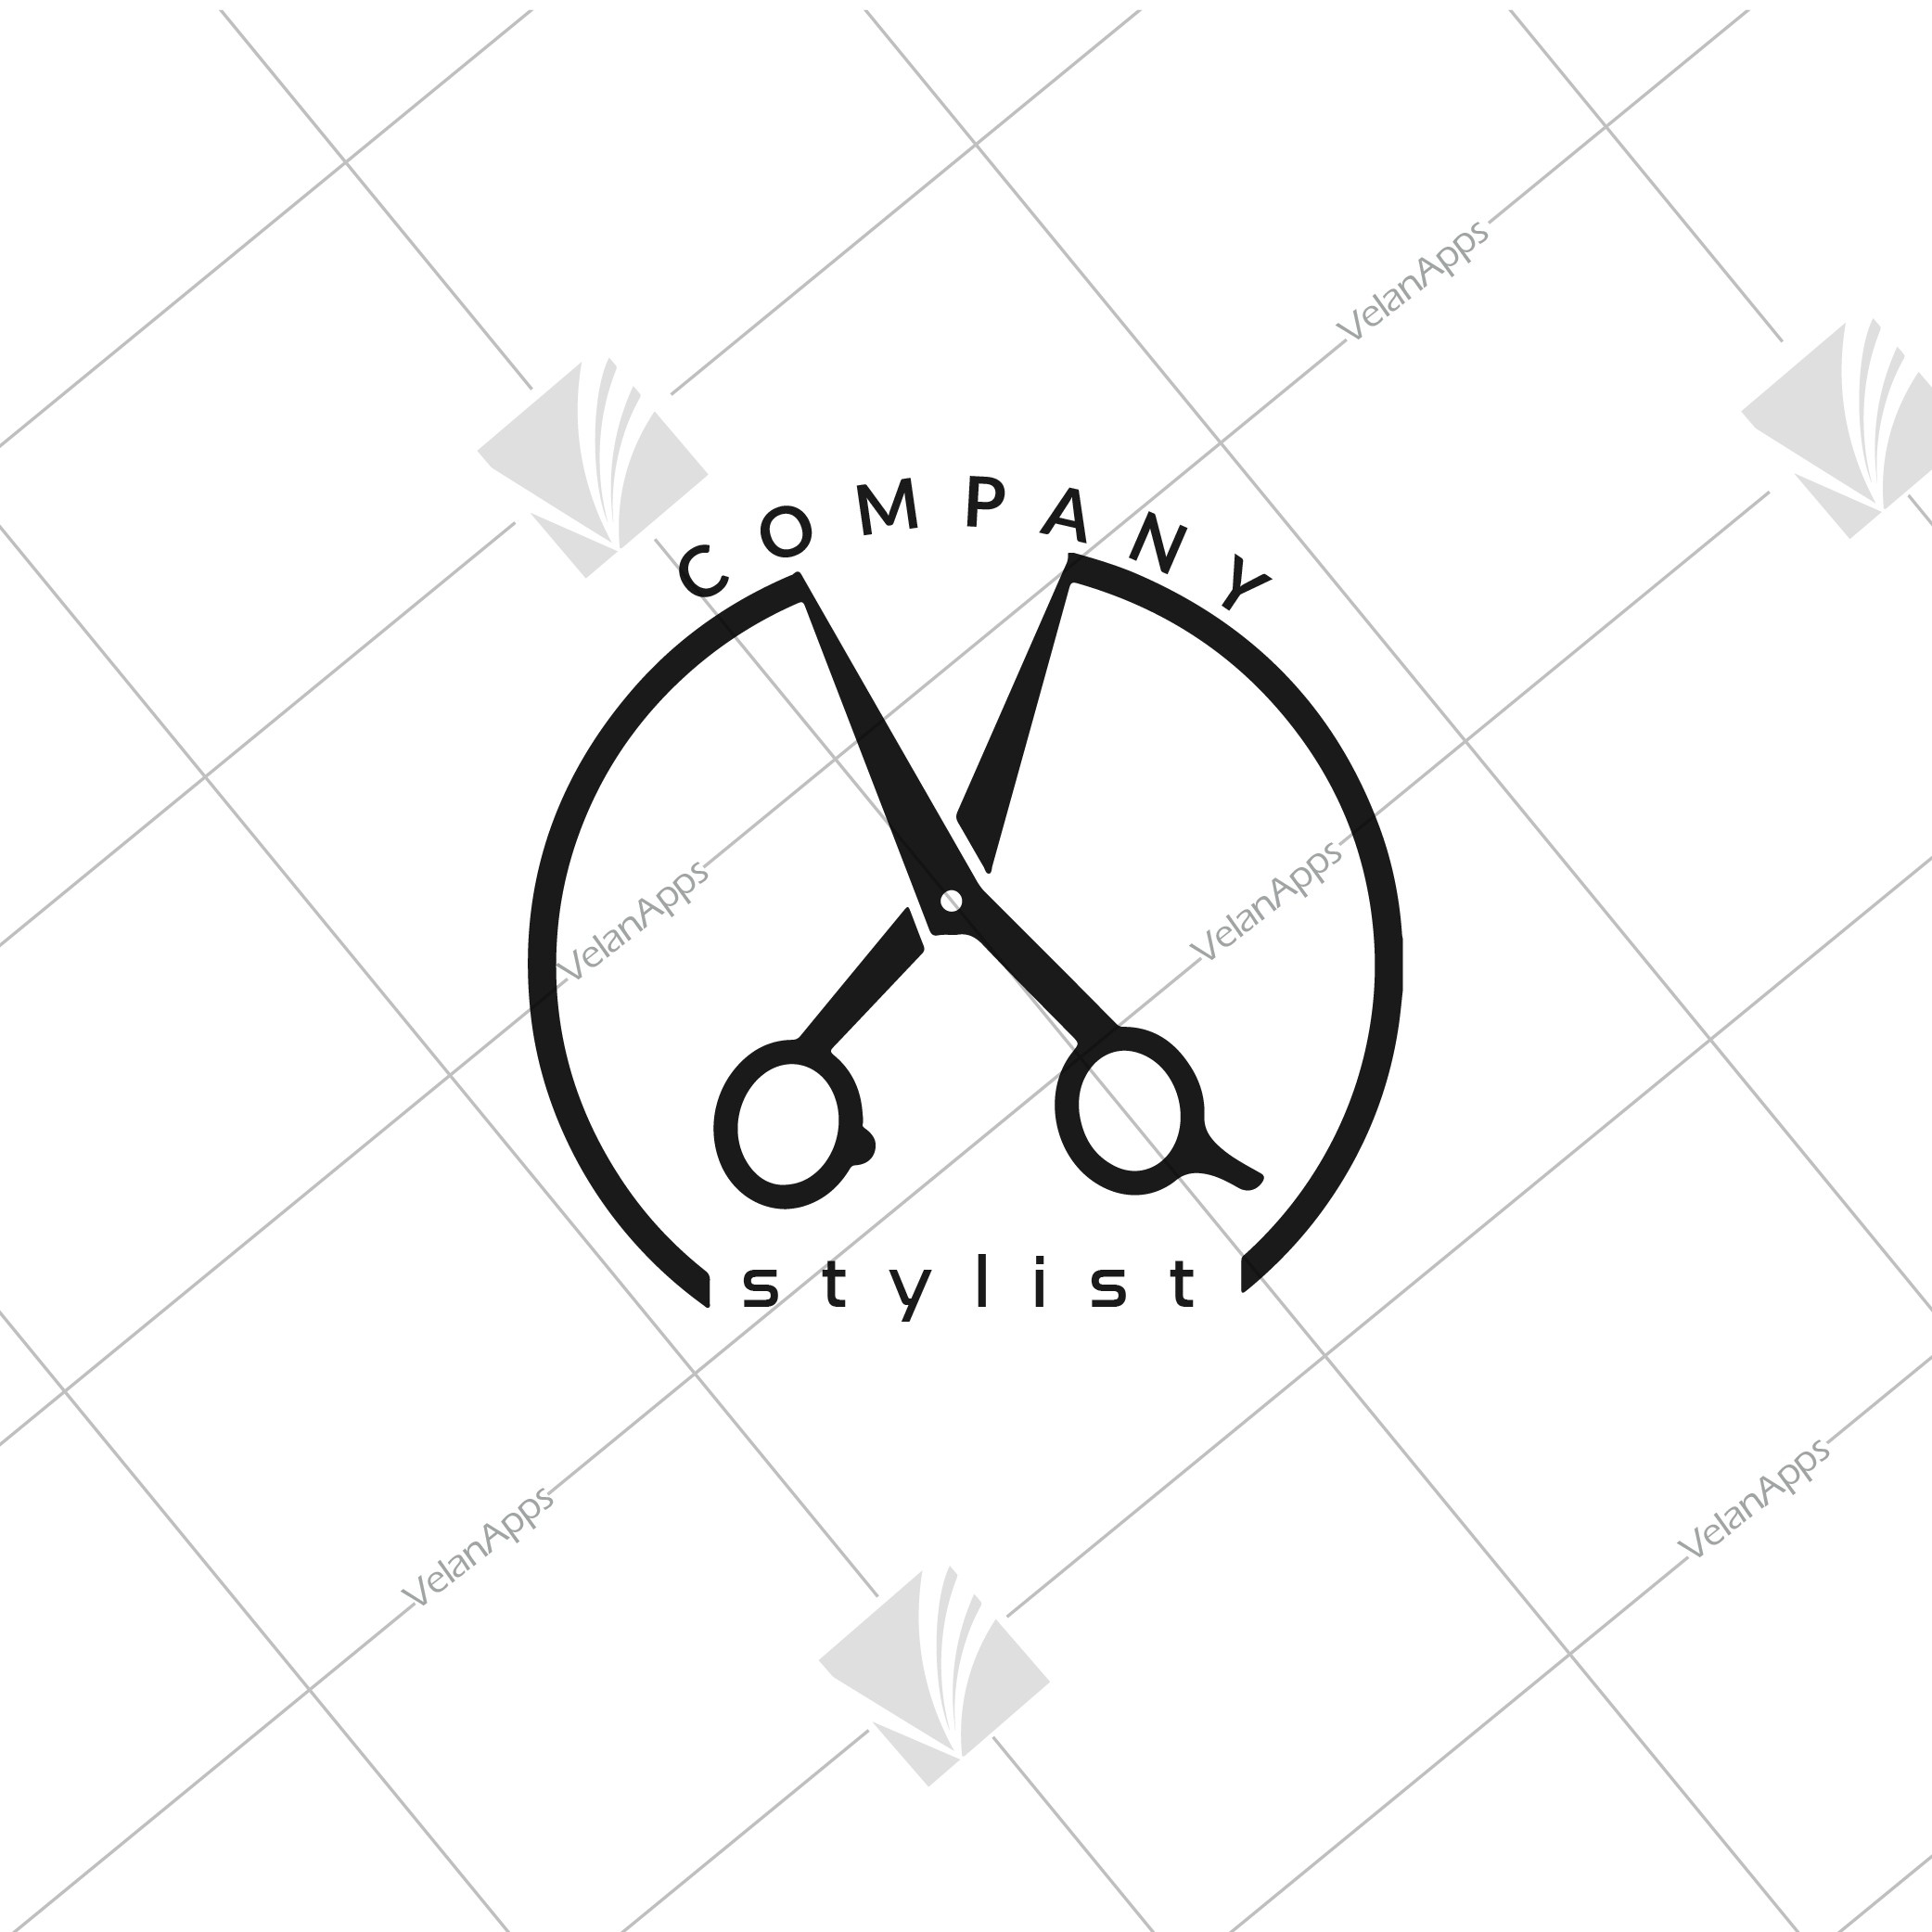 Hair Stylist Brand Logo Design